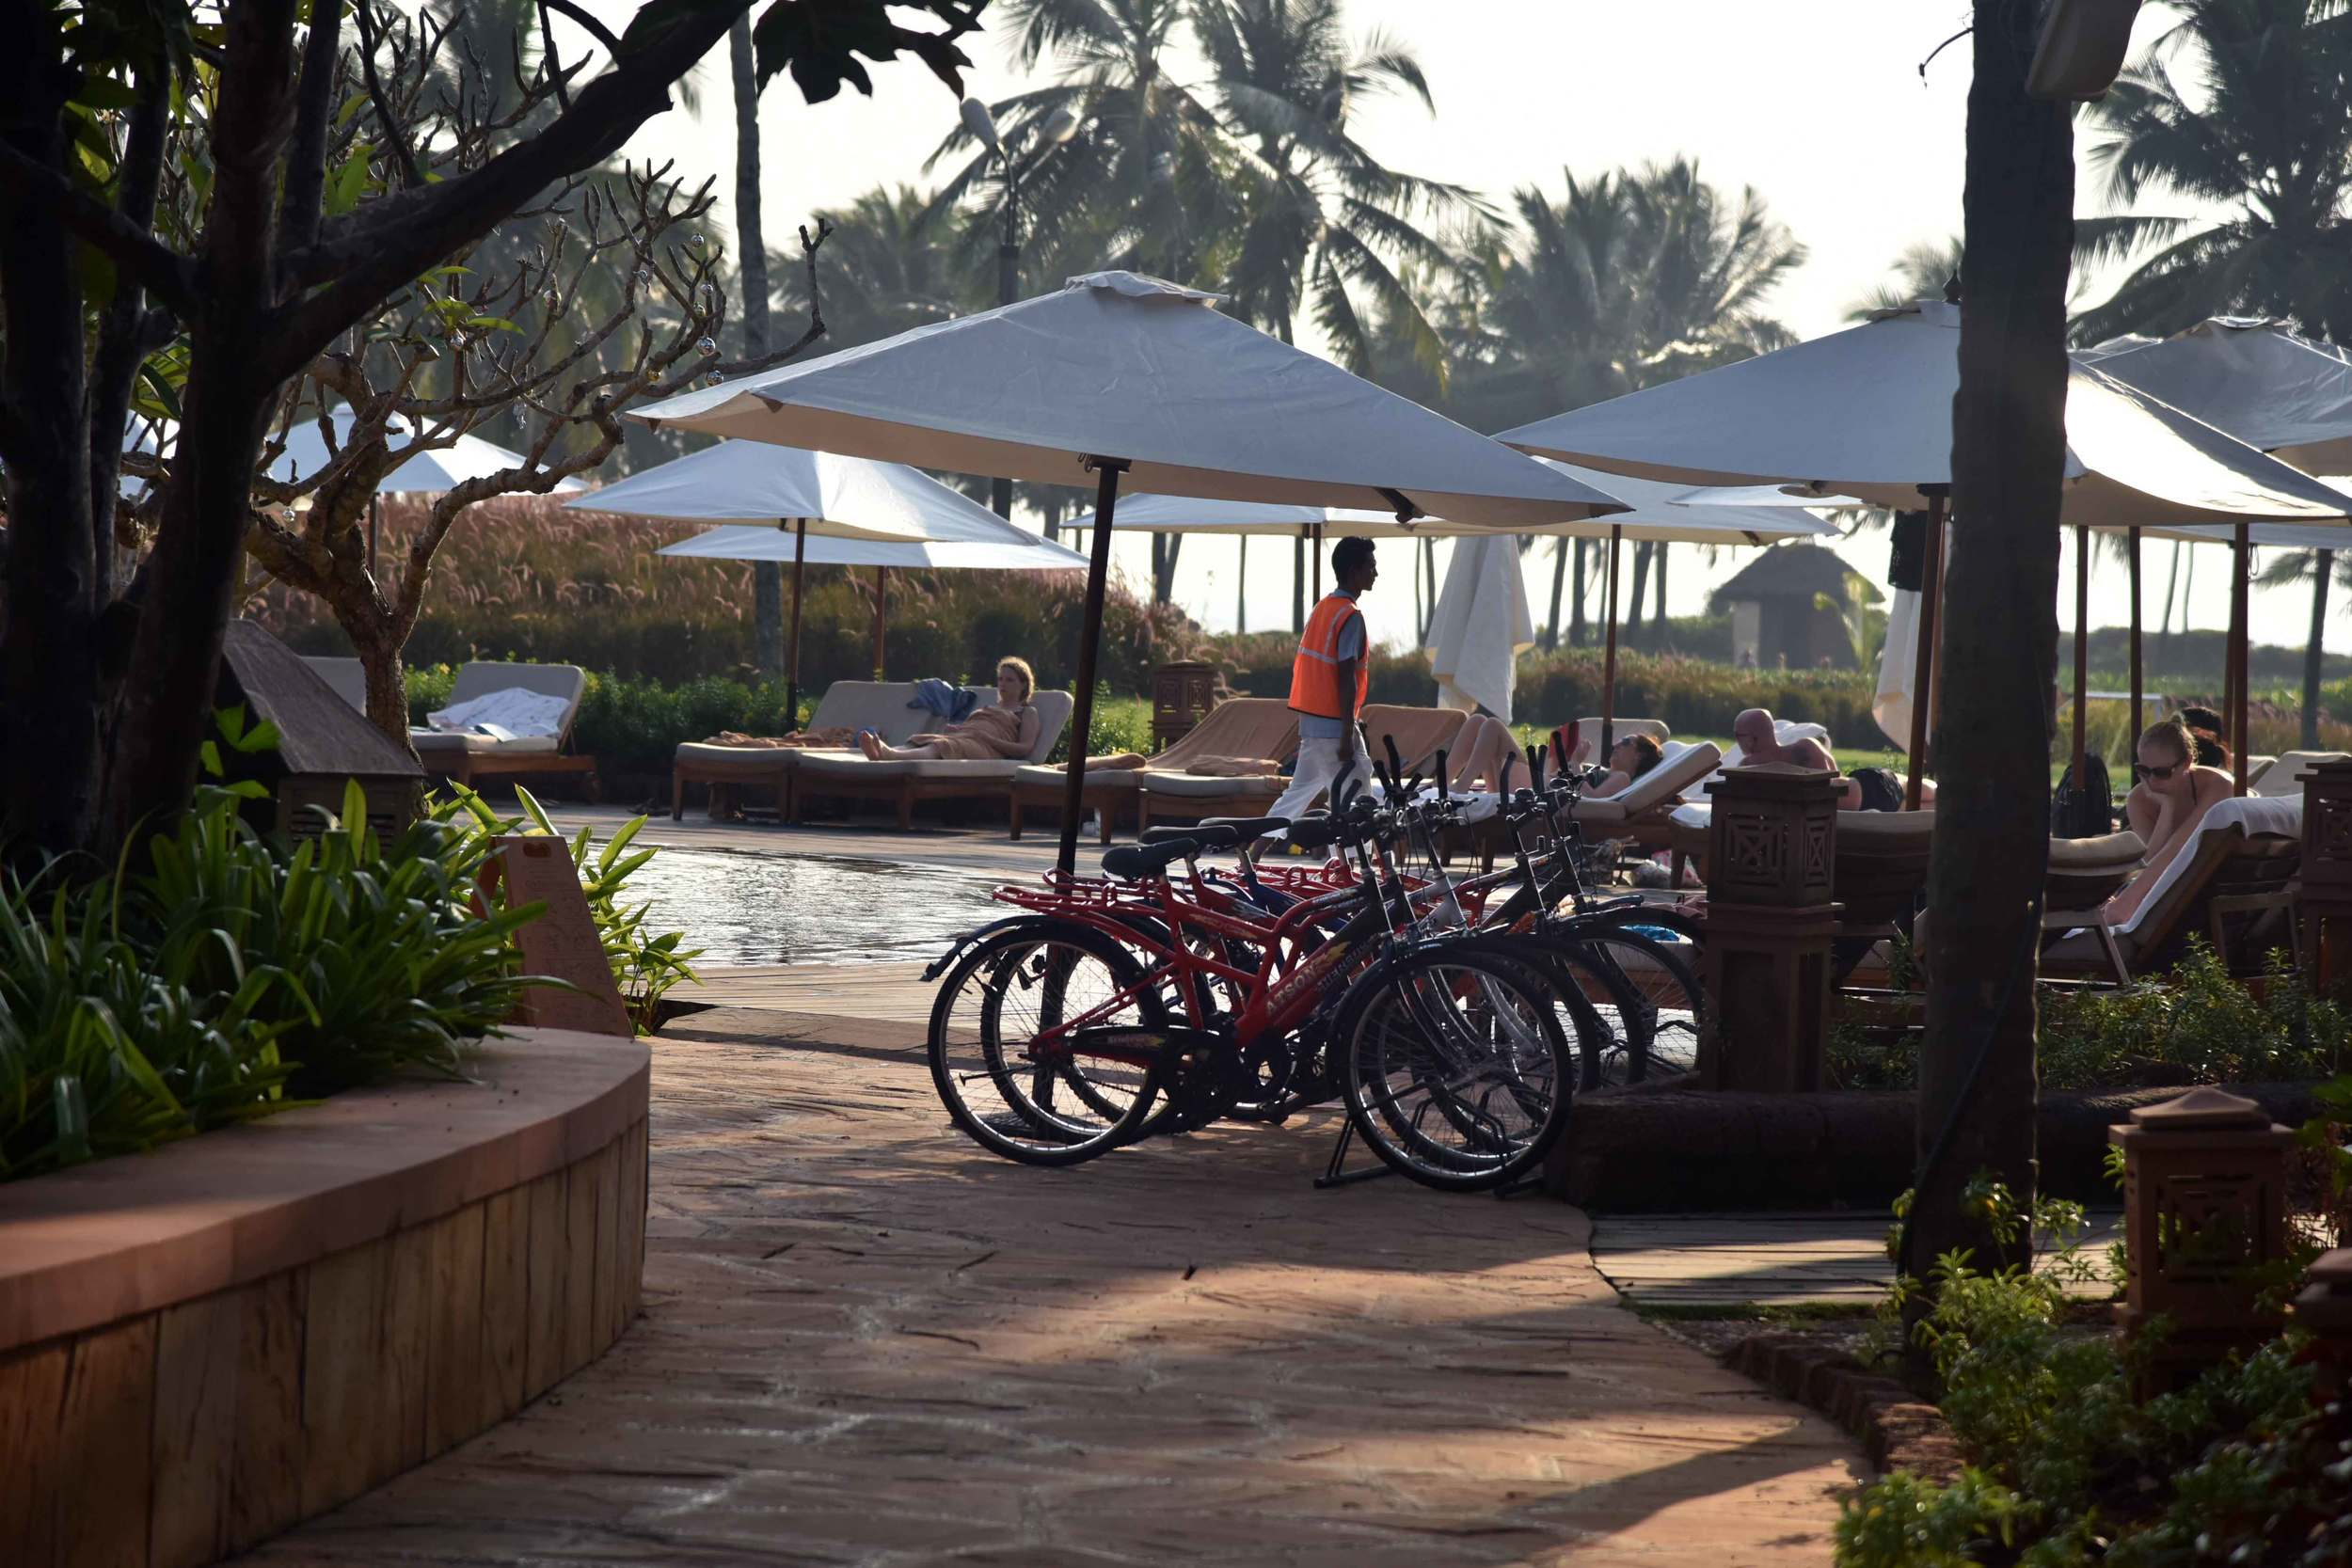 Bicycles for rent at the Park Hyatt Hotel, Goa, image©sourcingstyle.com.